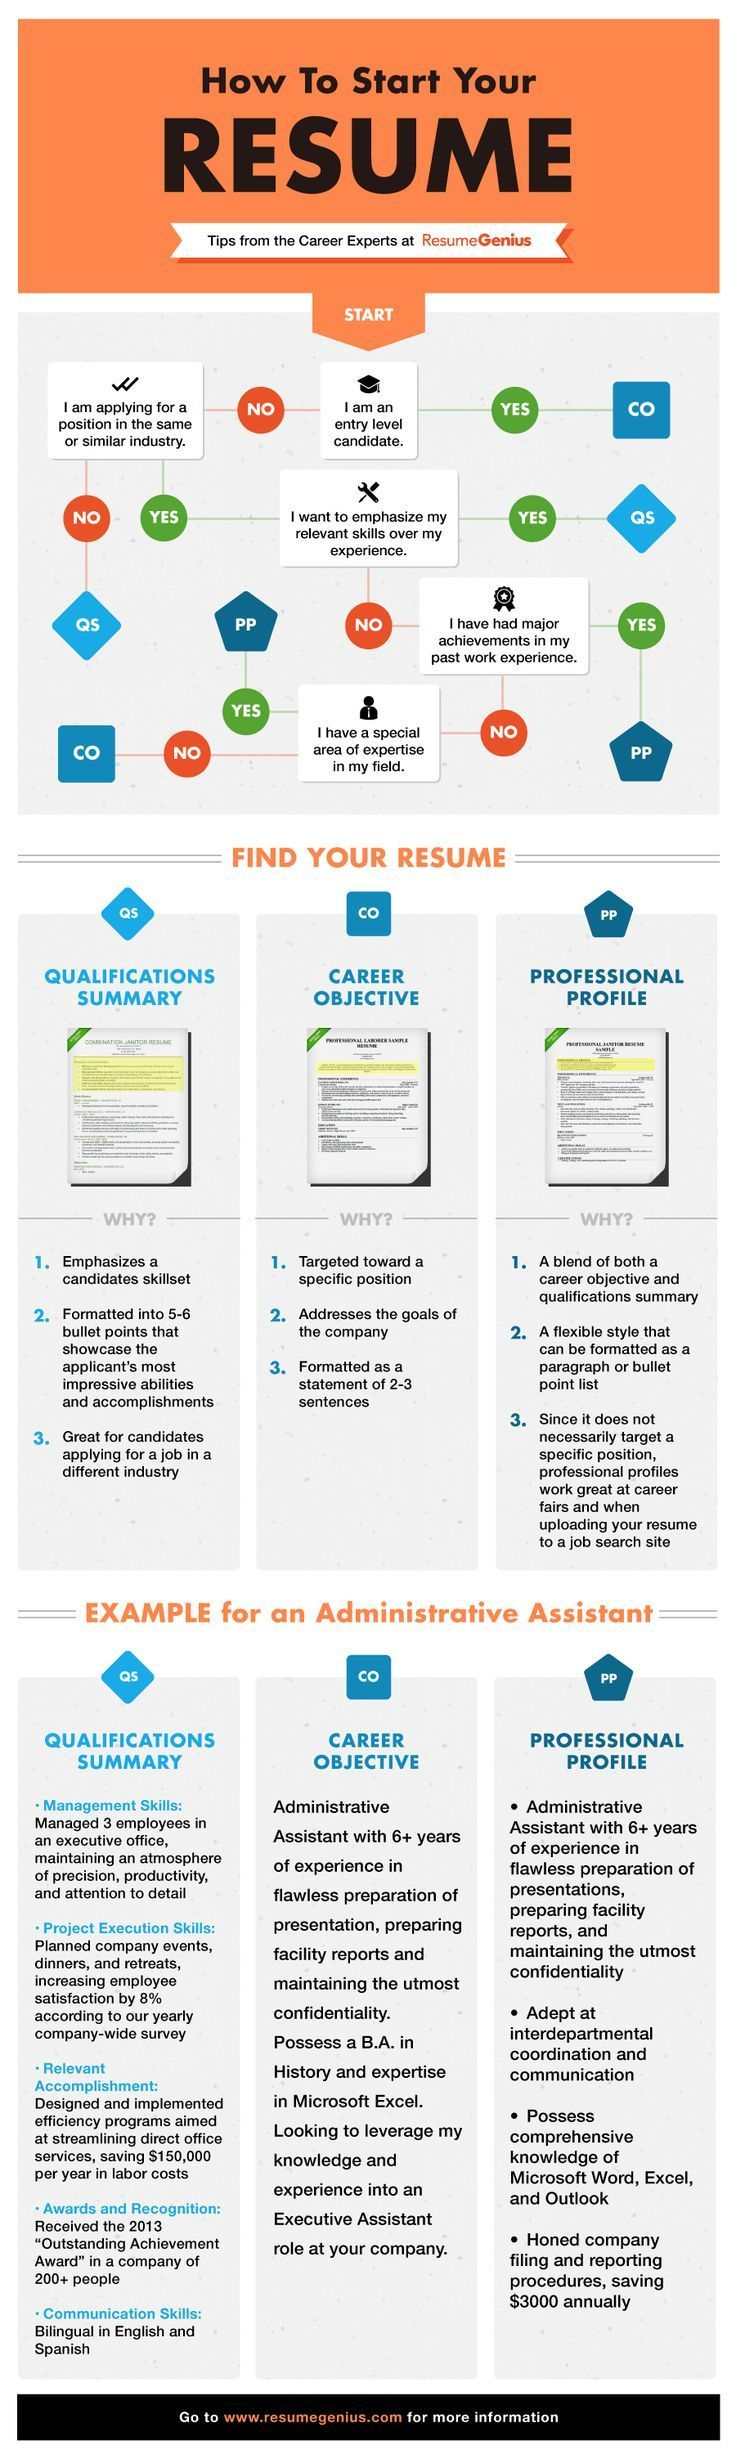 How To Start Your Resume Flow Chart